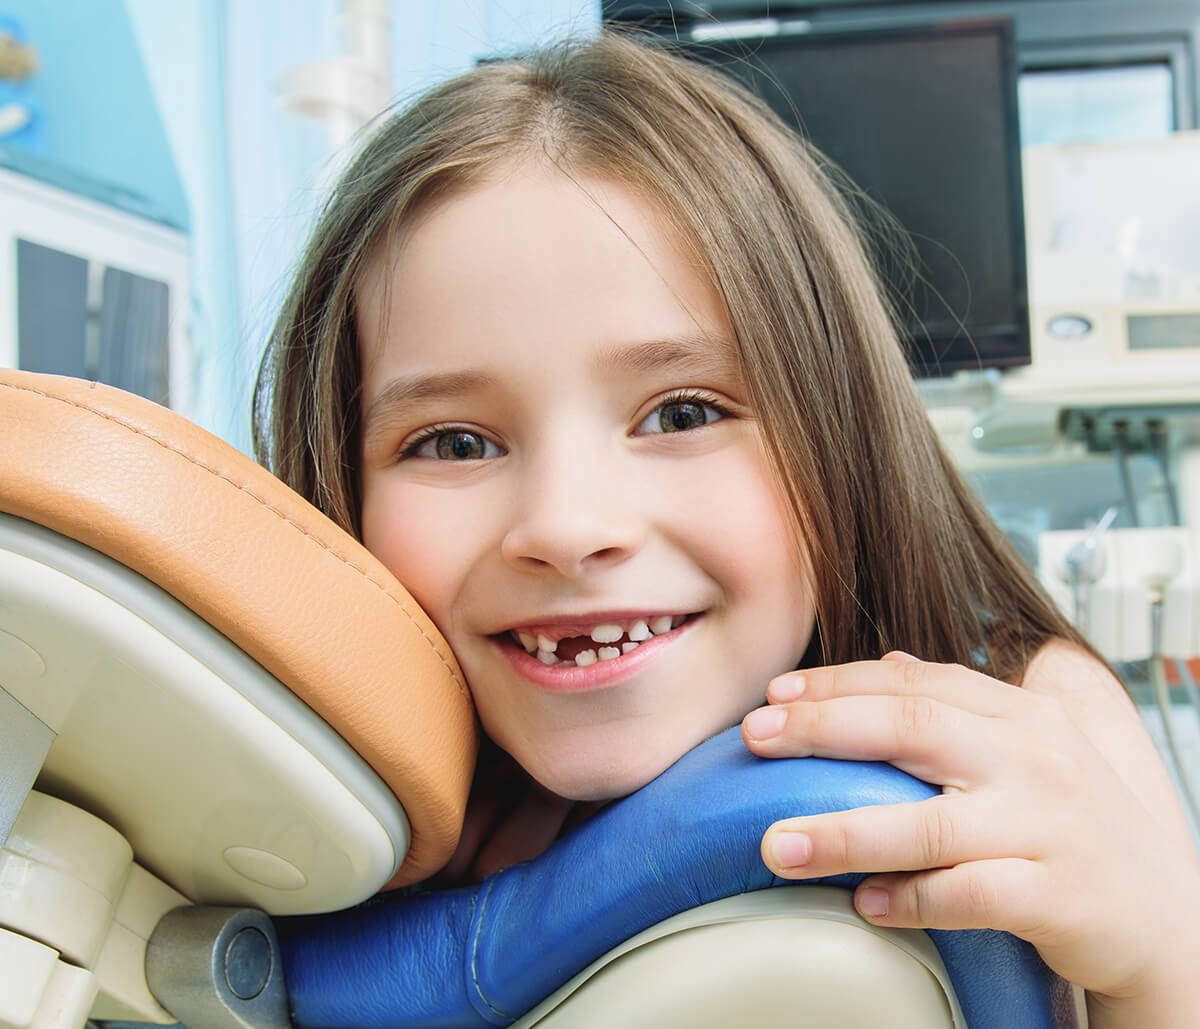 Medicaid Dentist in Fort Worth, TX Area Answers for What Pediatric Dental Care Does My Child Need?